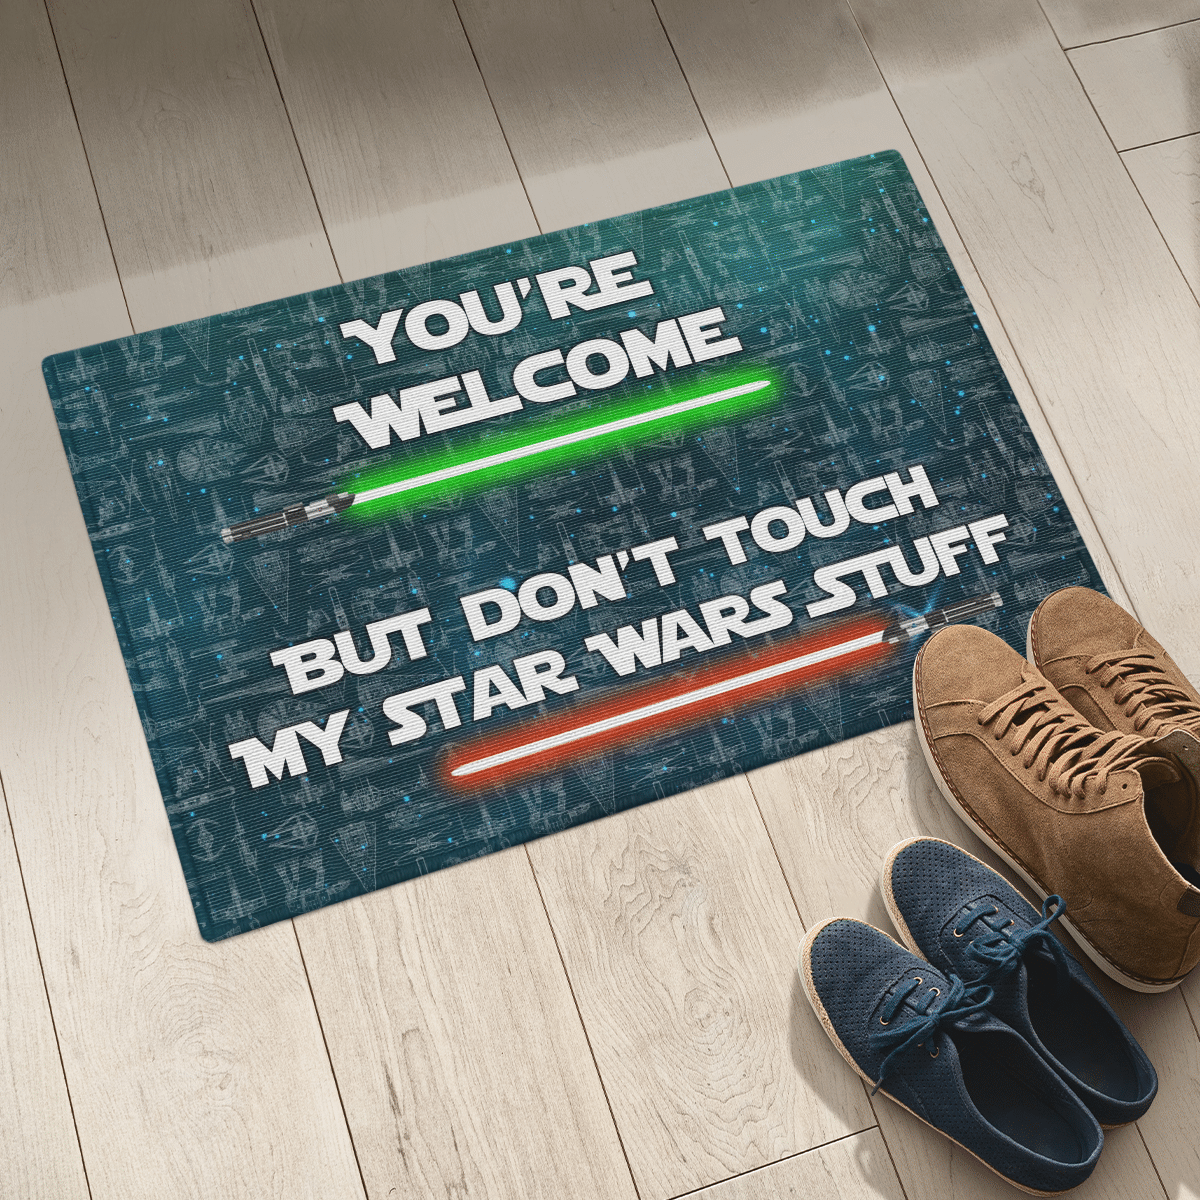 Star war Your welcome but dont touch my star wars stuff doormat